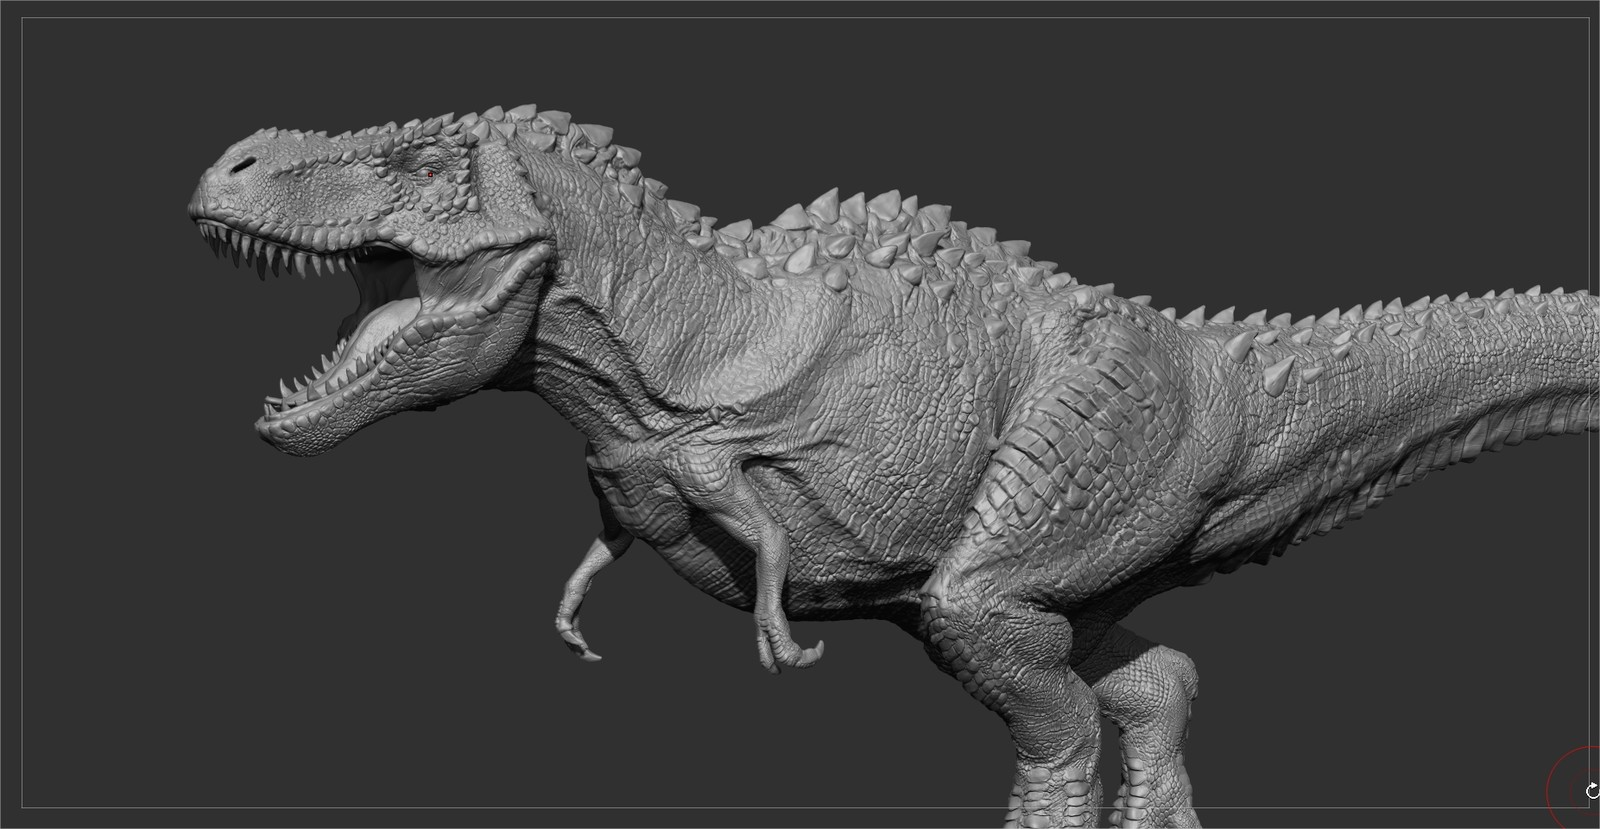 Screengrab from zbrush,